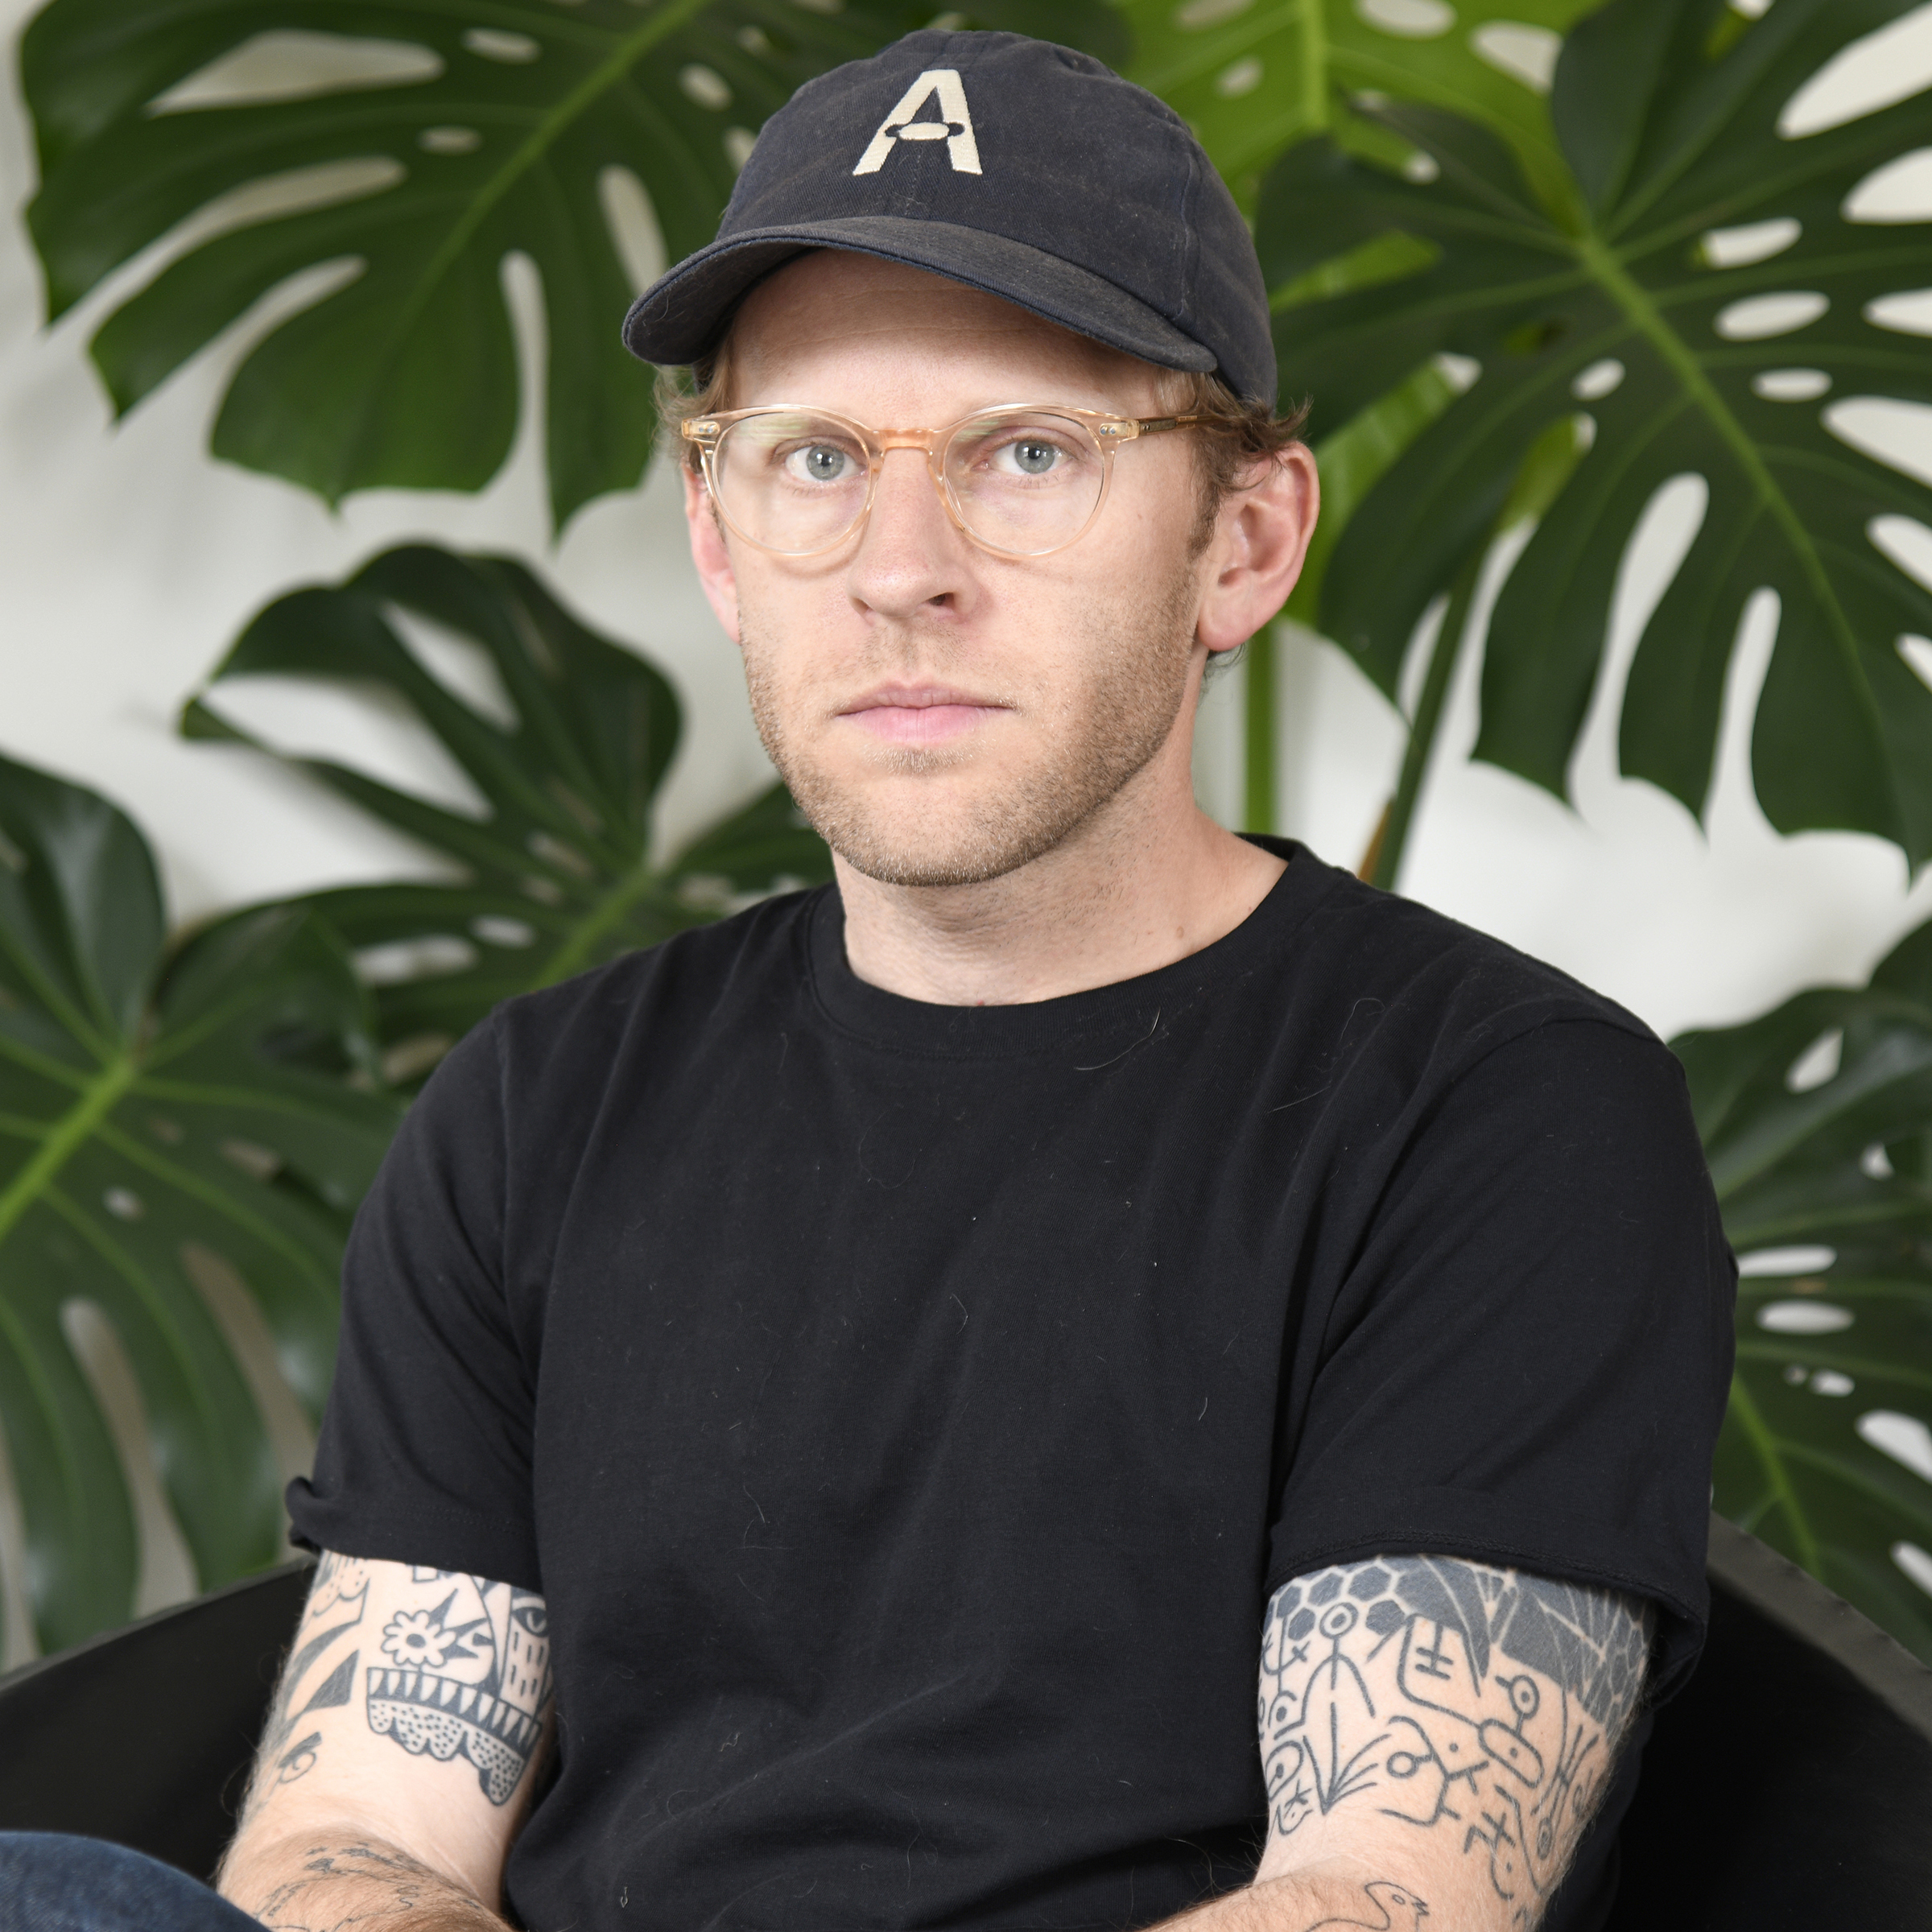 A photo of a white man wearing glasses, a black hat, and a black shirt.